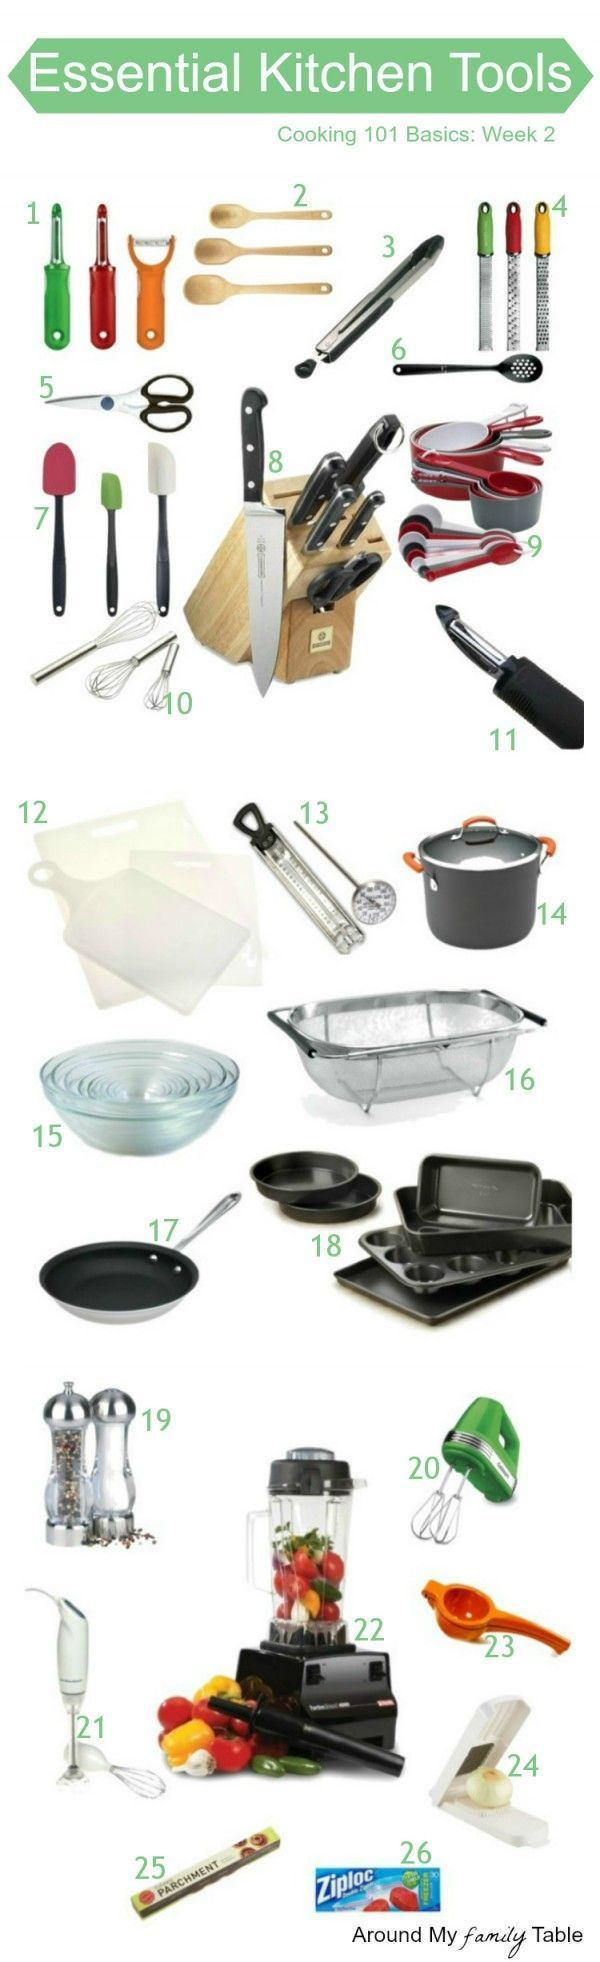 A 16-week program learning how to cook basic recipes from scratch from gravy to pasta to cakes! This week is Cooking 101 Basics Week #2 - Tools of the Trade   https://lomejordelaweb.es/